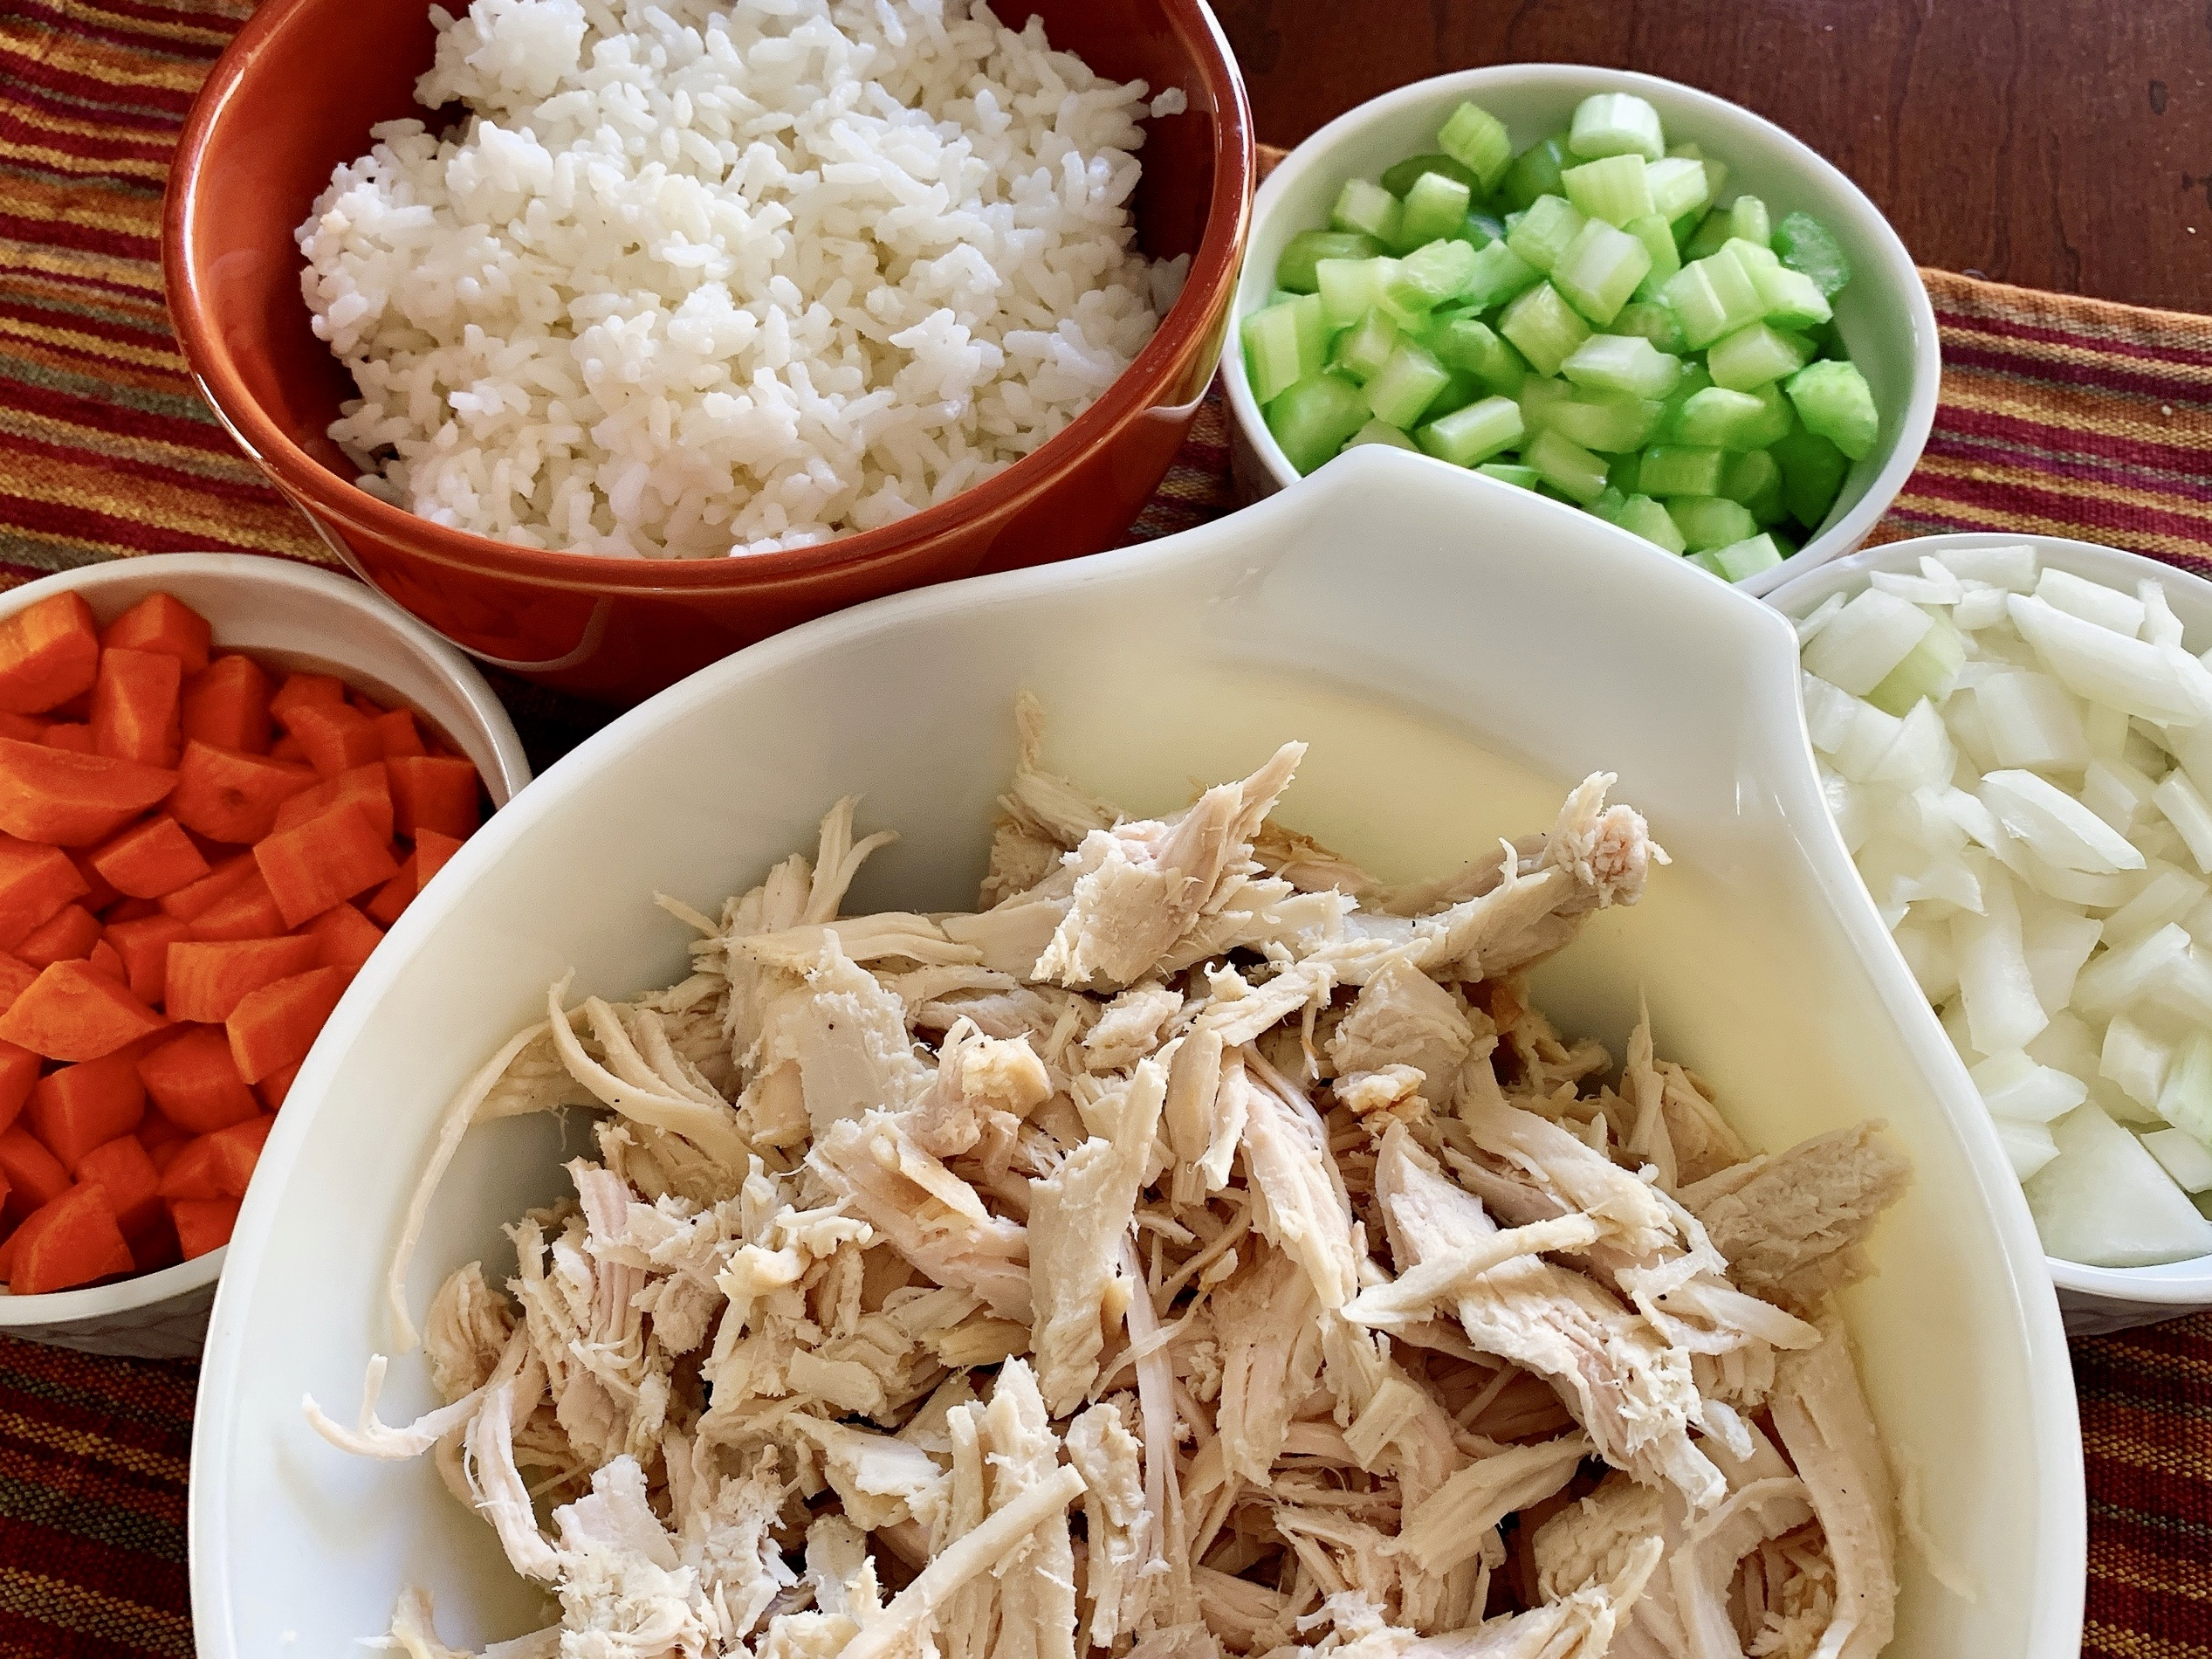 Chopped and prepped ingredients for making turkey soup